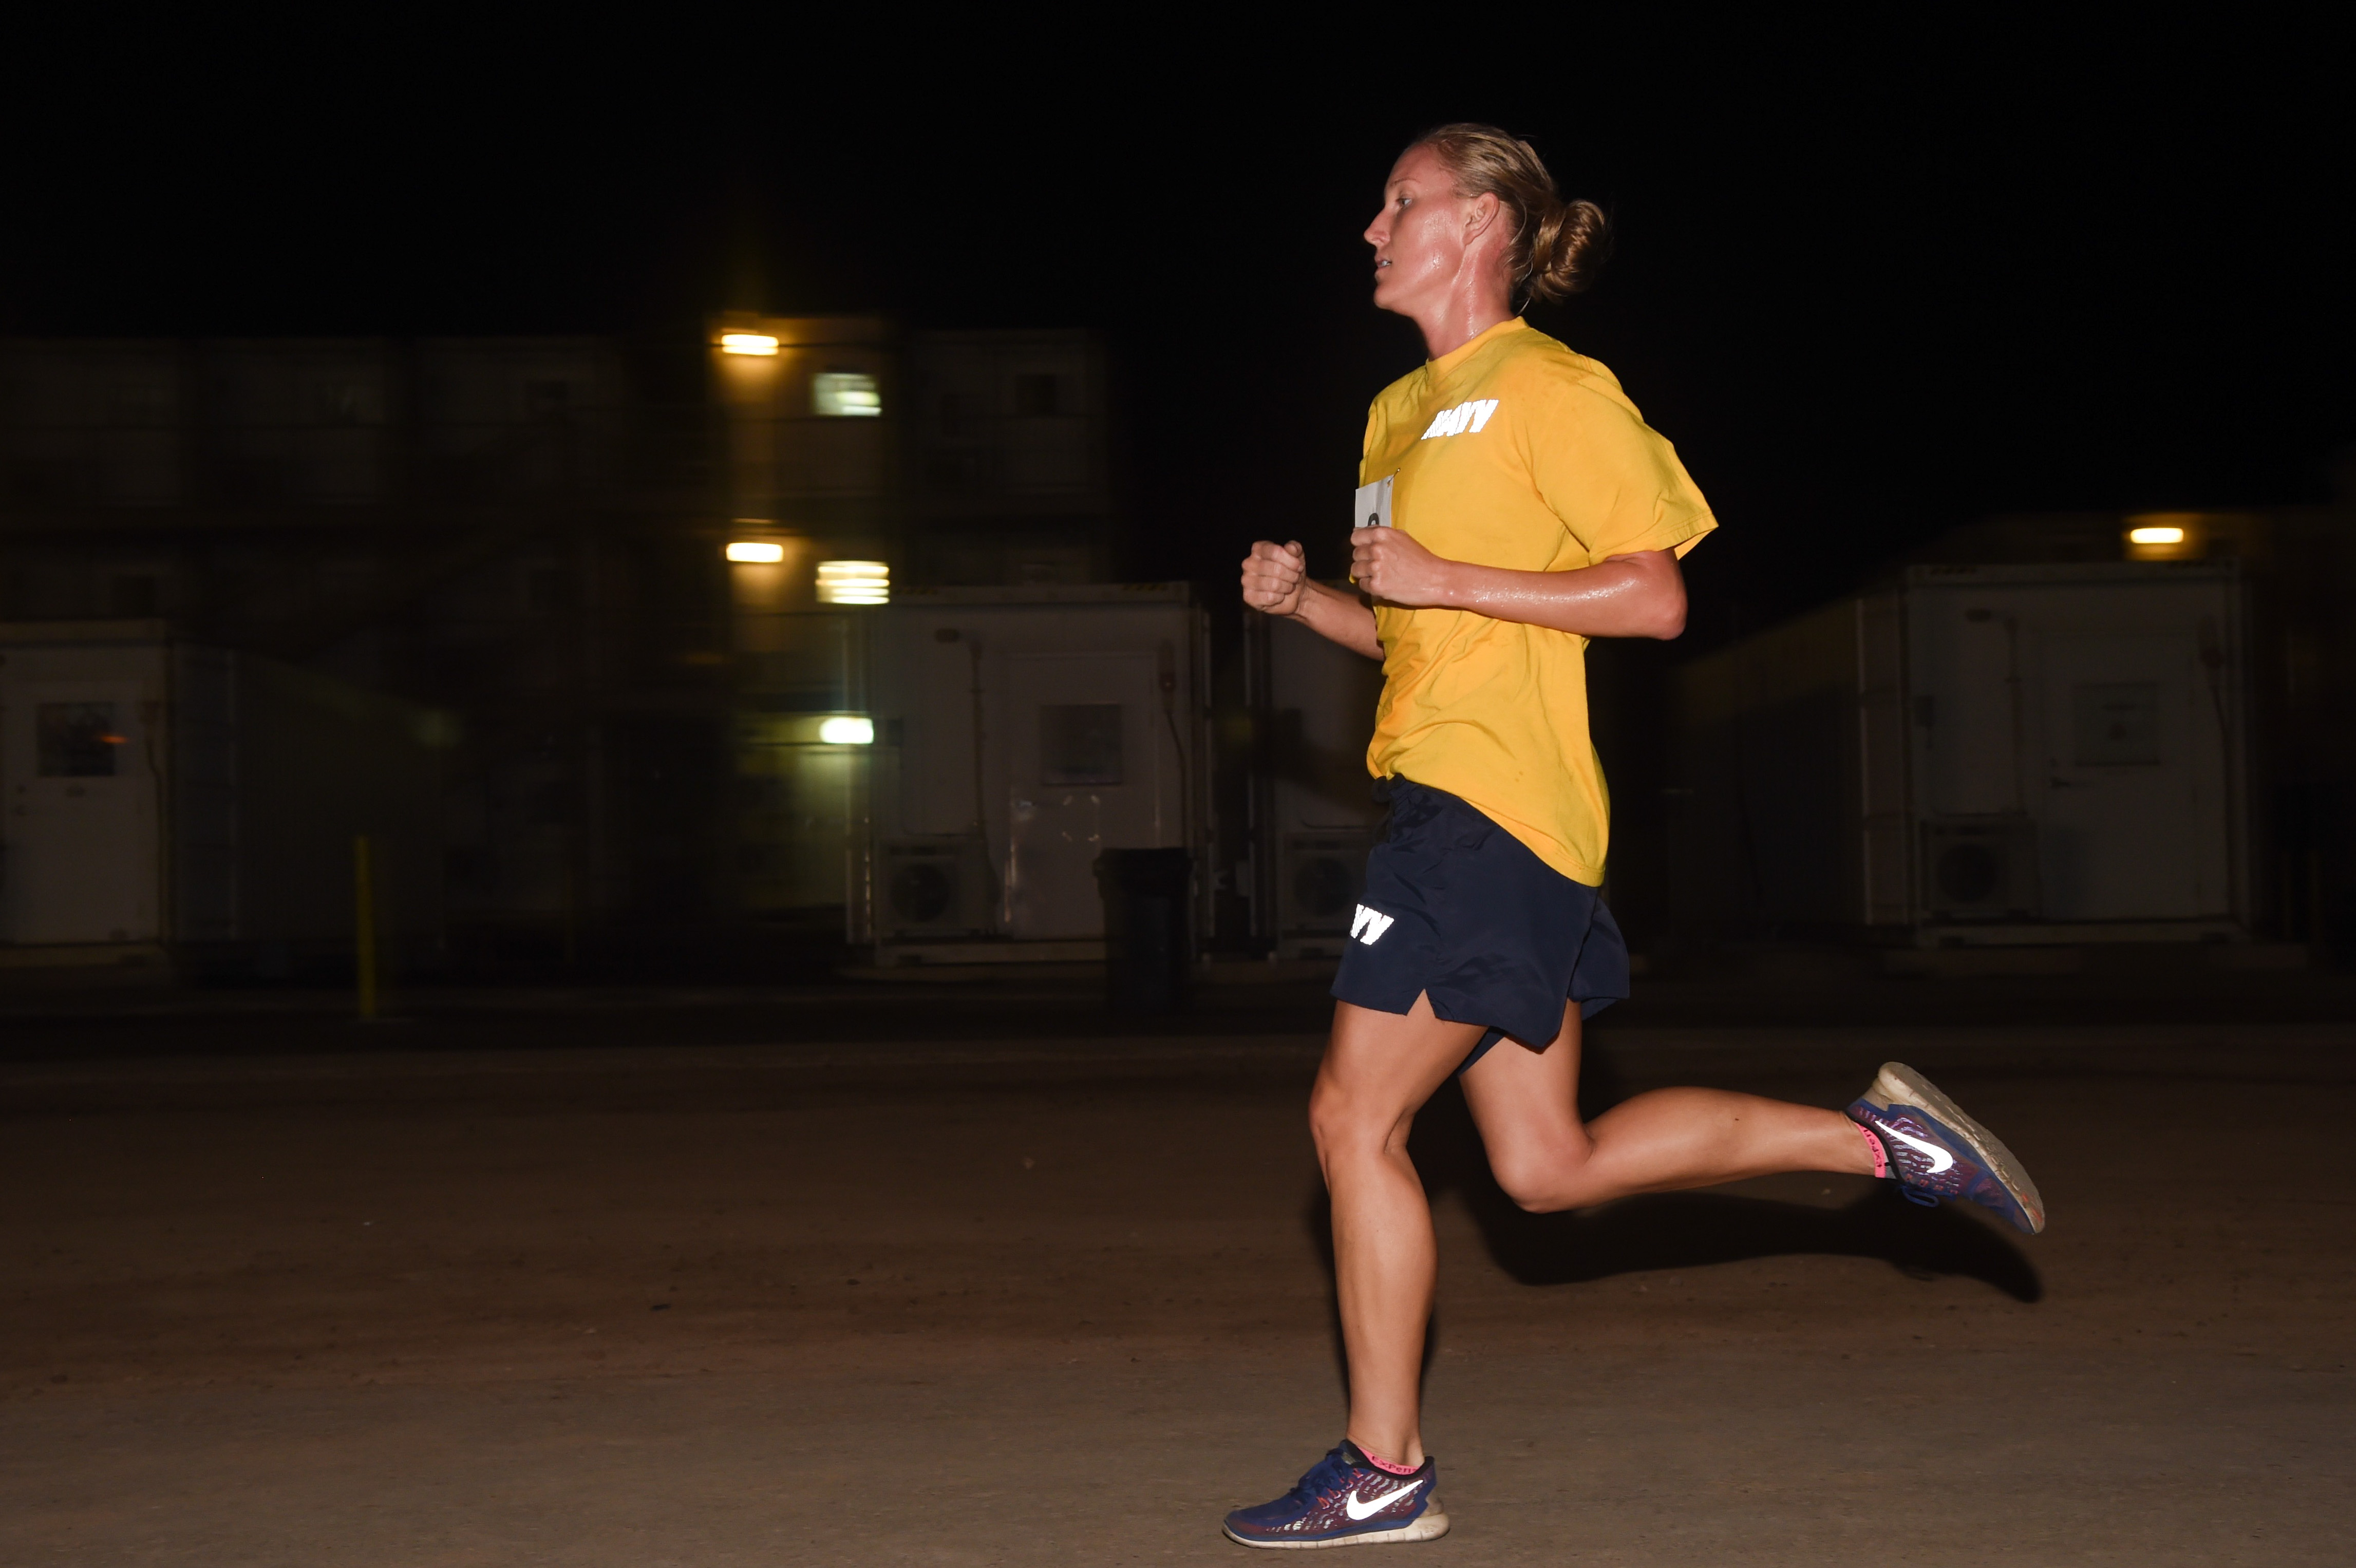 U.S. Navy Lt. j.g. Christina Hammervold, Task Force Sparta platoon commander, sprints her two-mile run graded to Army standards during the Joint Warrior Competition, Nov. 19, 2016, Camp Lemonnier, Djibouti. The run began after participants had already completed pull-ups, sit-ups, and push-ups. Members involved in the event met on the turf field at 3:30 a.m. to begin the day of events. (U.S. Air National Guard photo by Staff Sgt. Penny Snoozy)